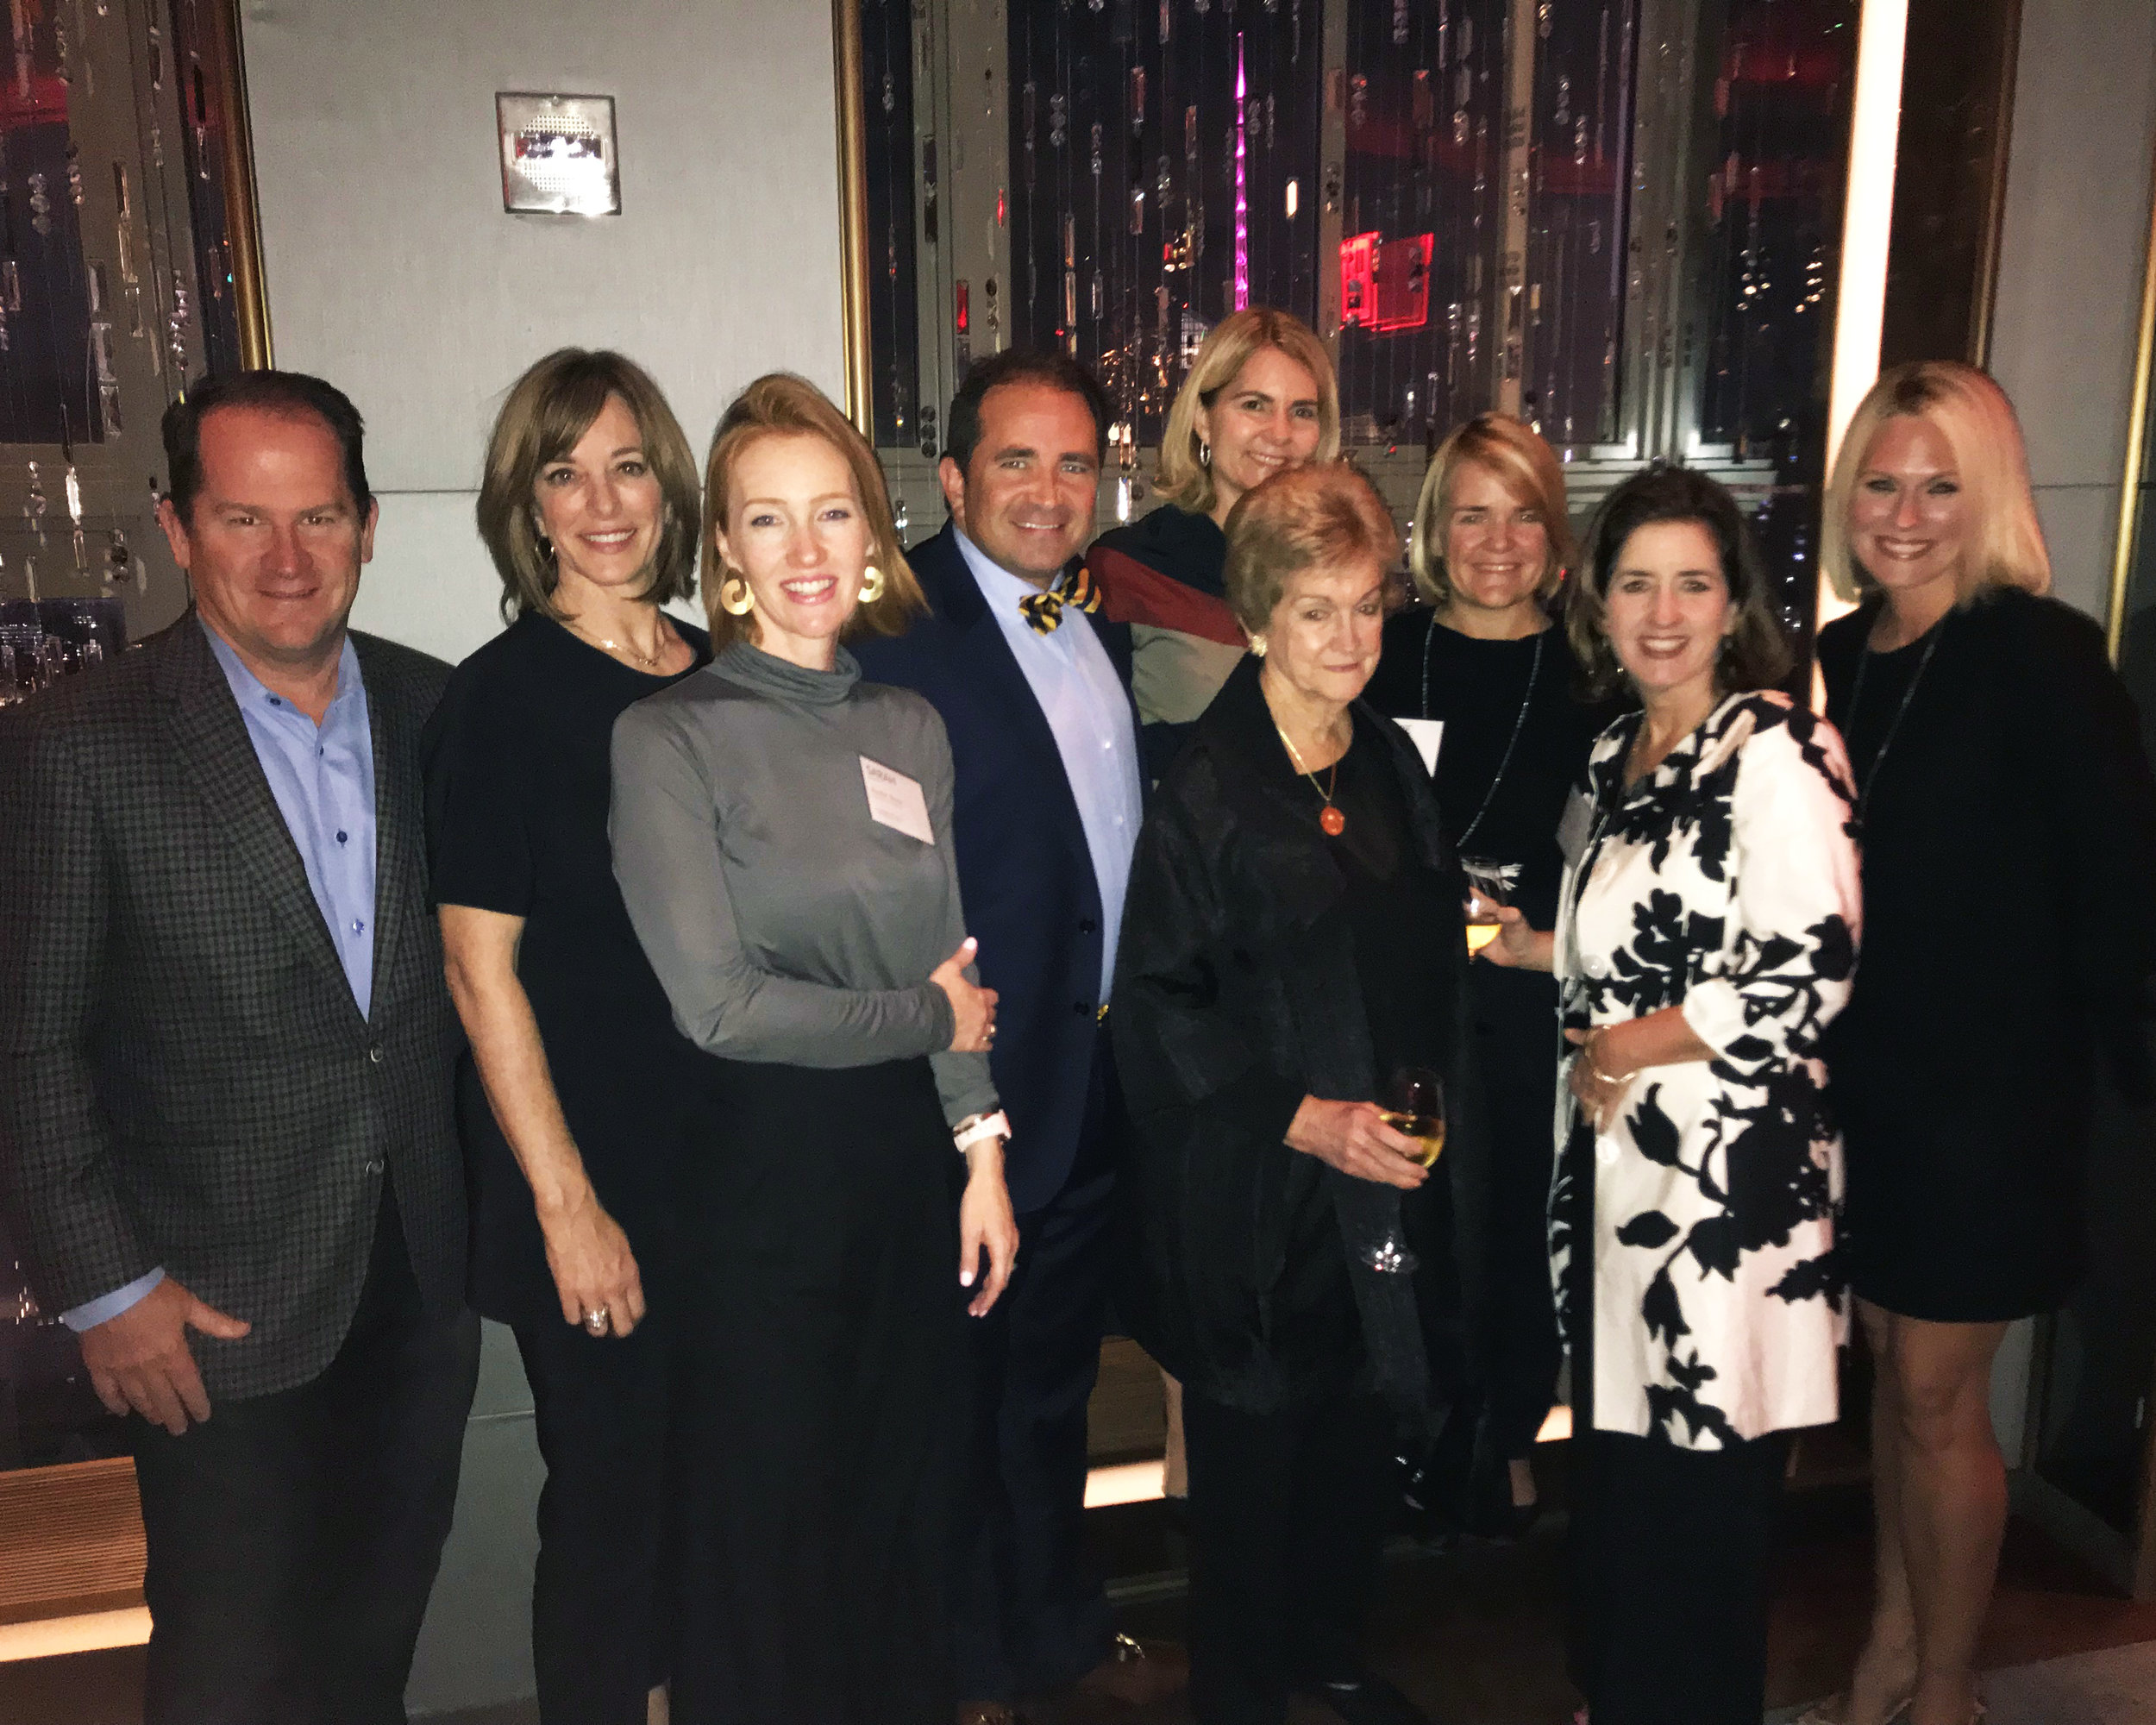 Moreland Properties Christie's Conference NYC 2018